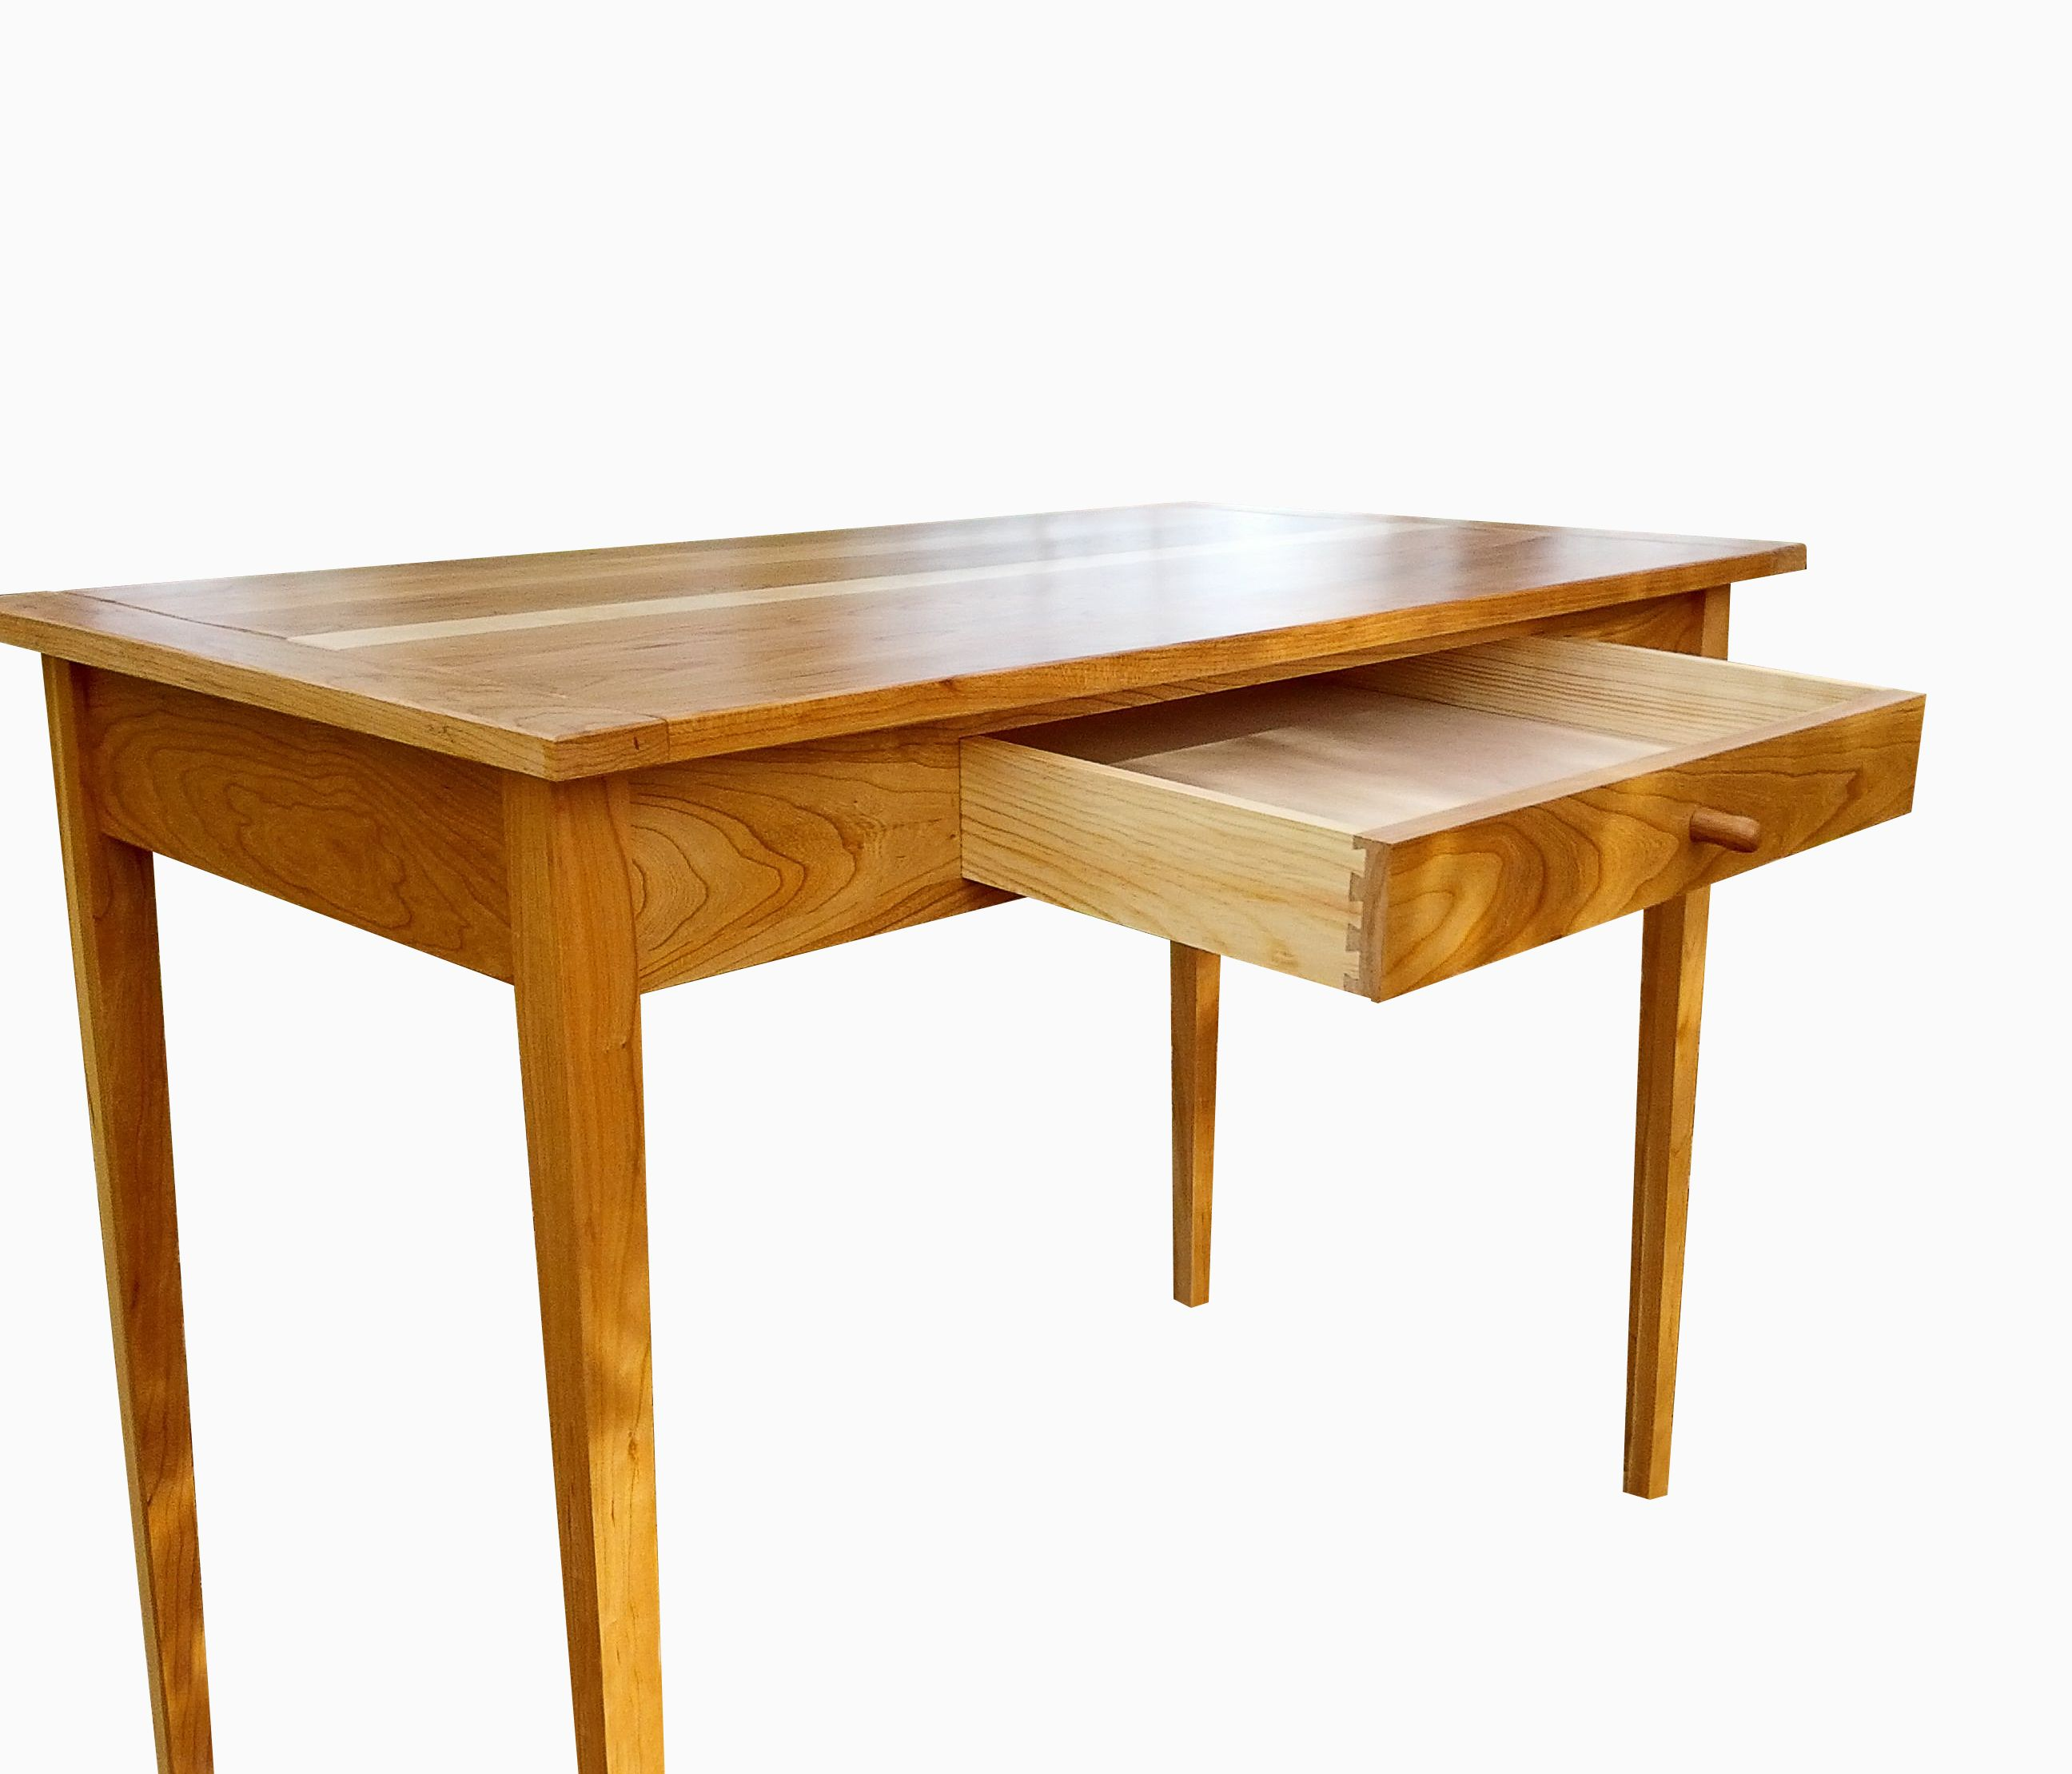 Desk Styles buy a custom cherry shaker style writing desk, made to order from